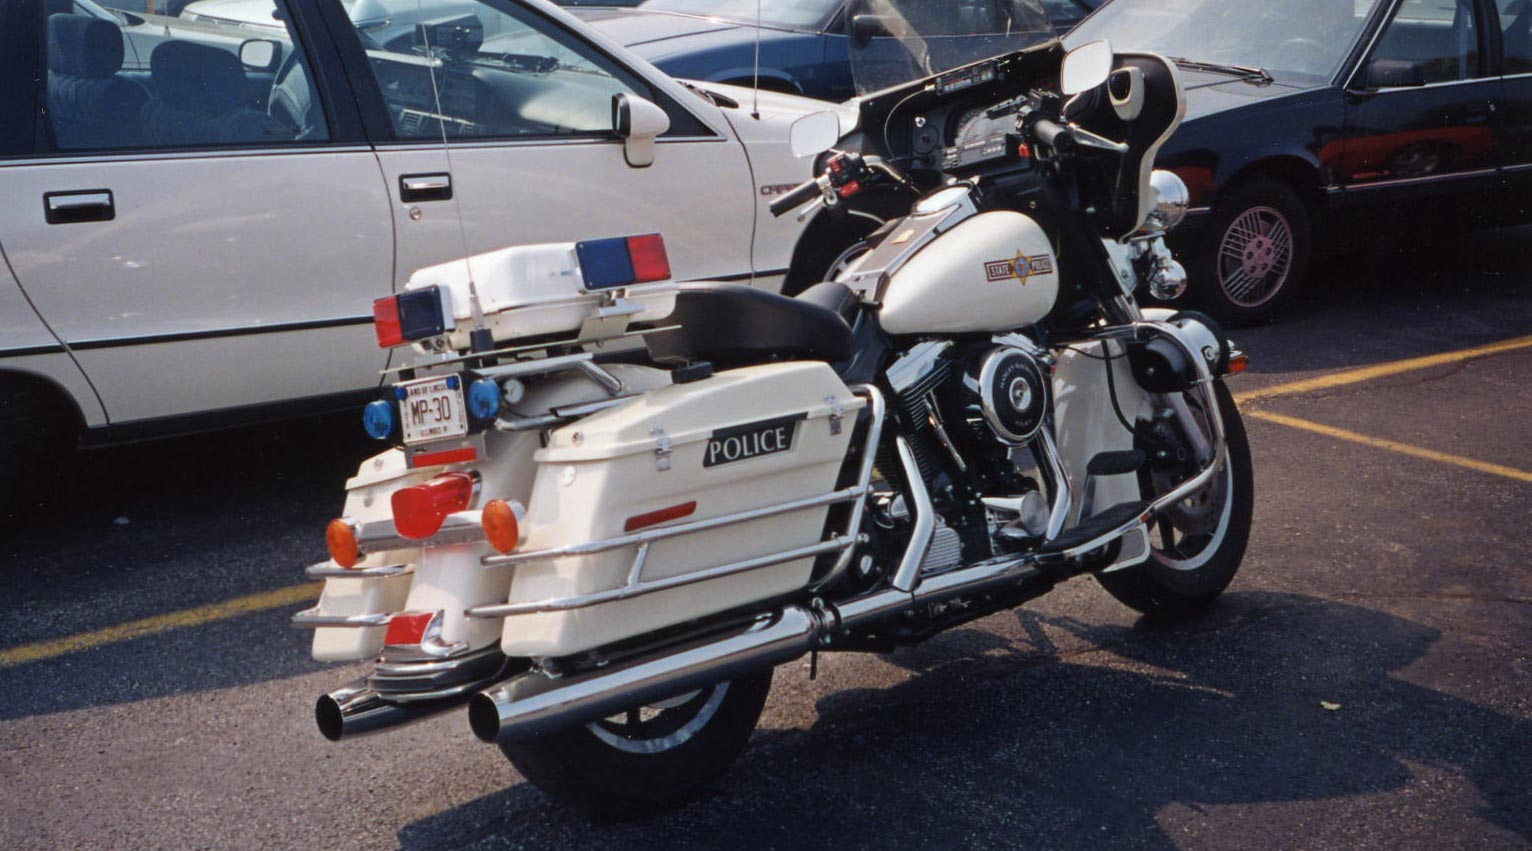 Illinois police motorcycle